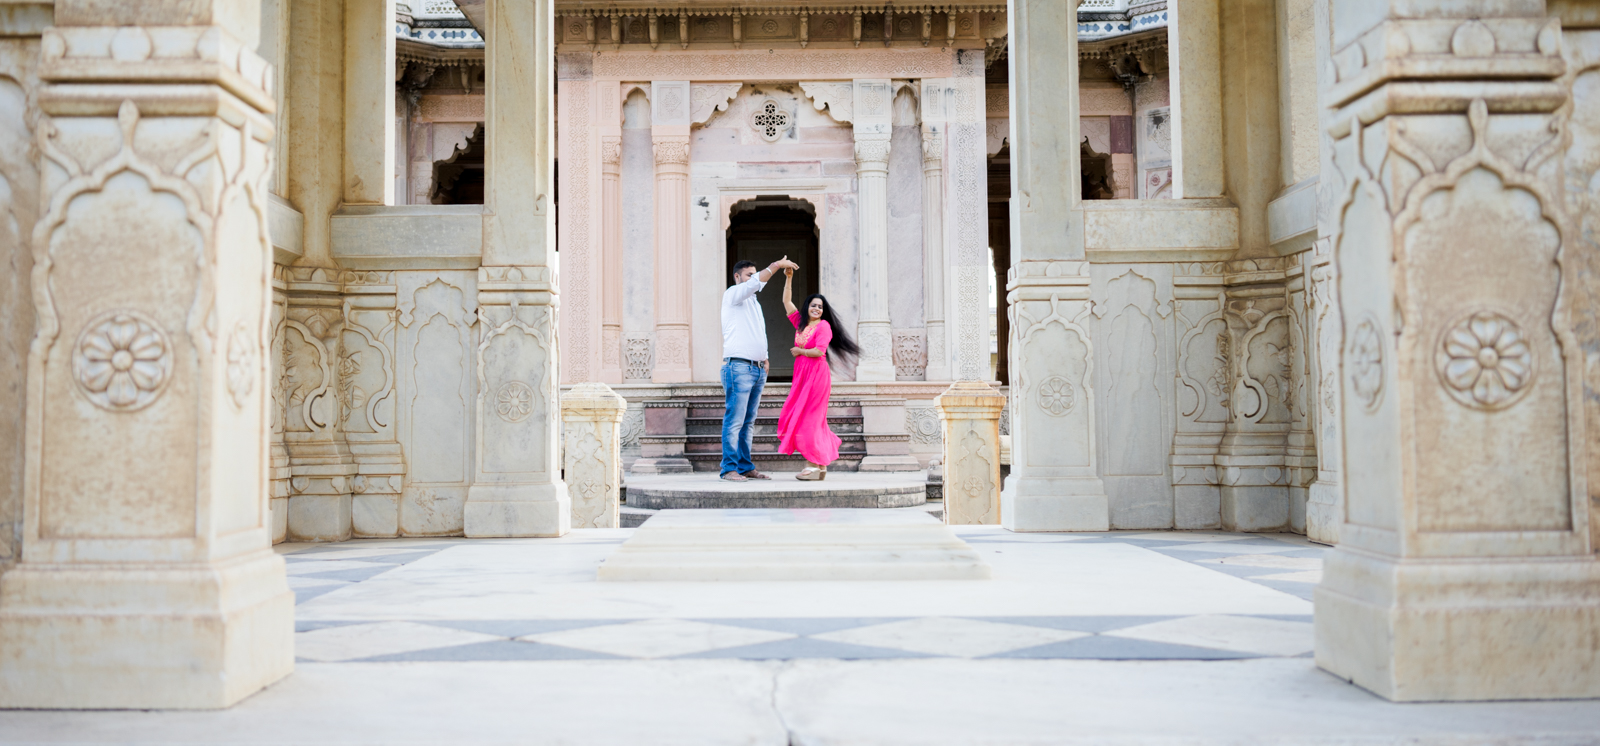 The Infamous Waltzing Twirl can get couples enjoy the photoshoot even if they have two left feet. #confessions of a #photographer